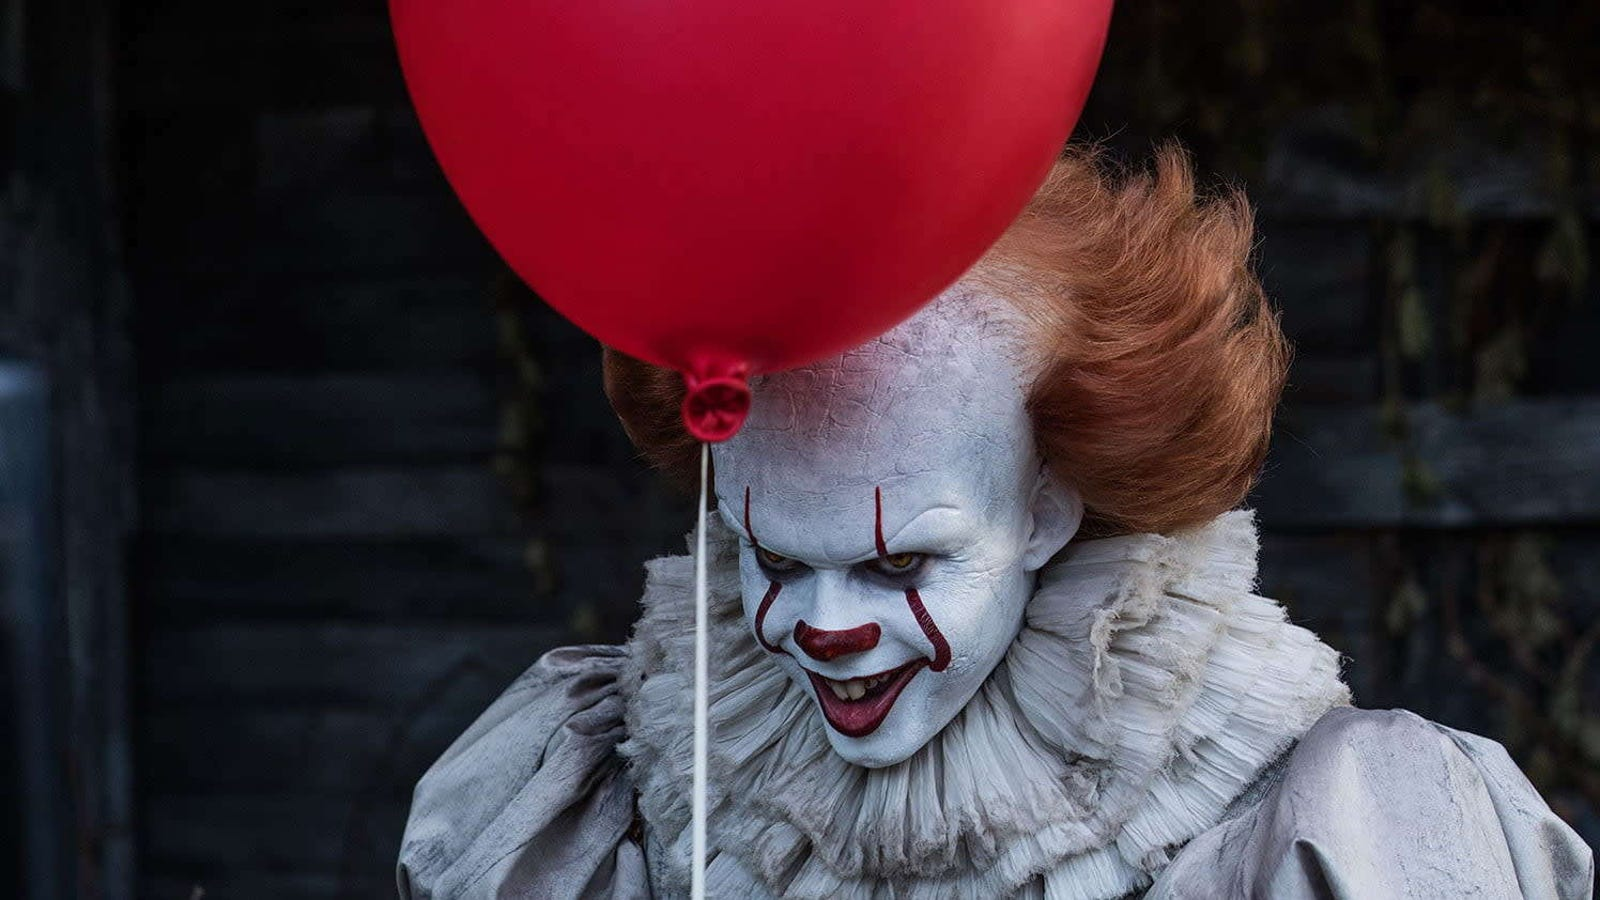 Get Paid $1300 to Watch 13 Stephen King Movies Before Halloween